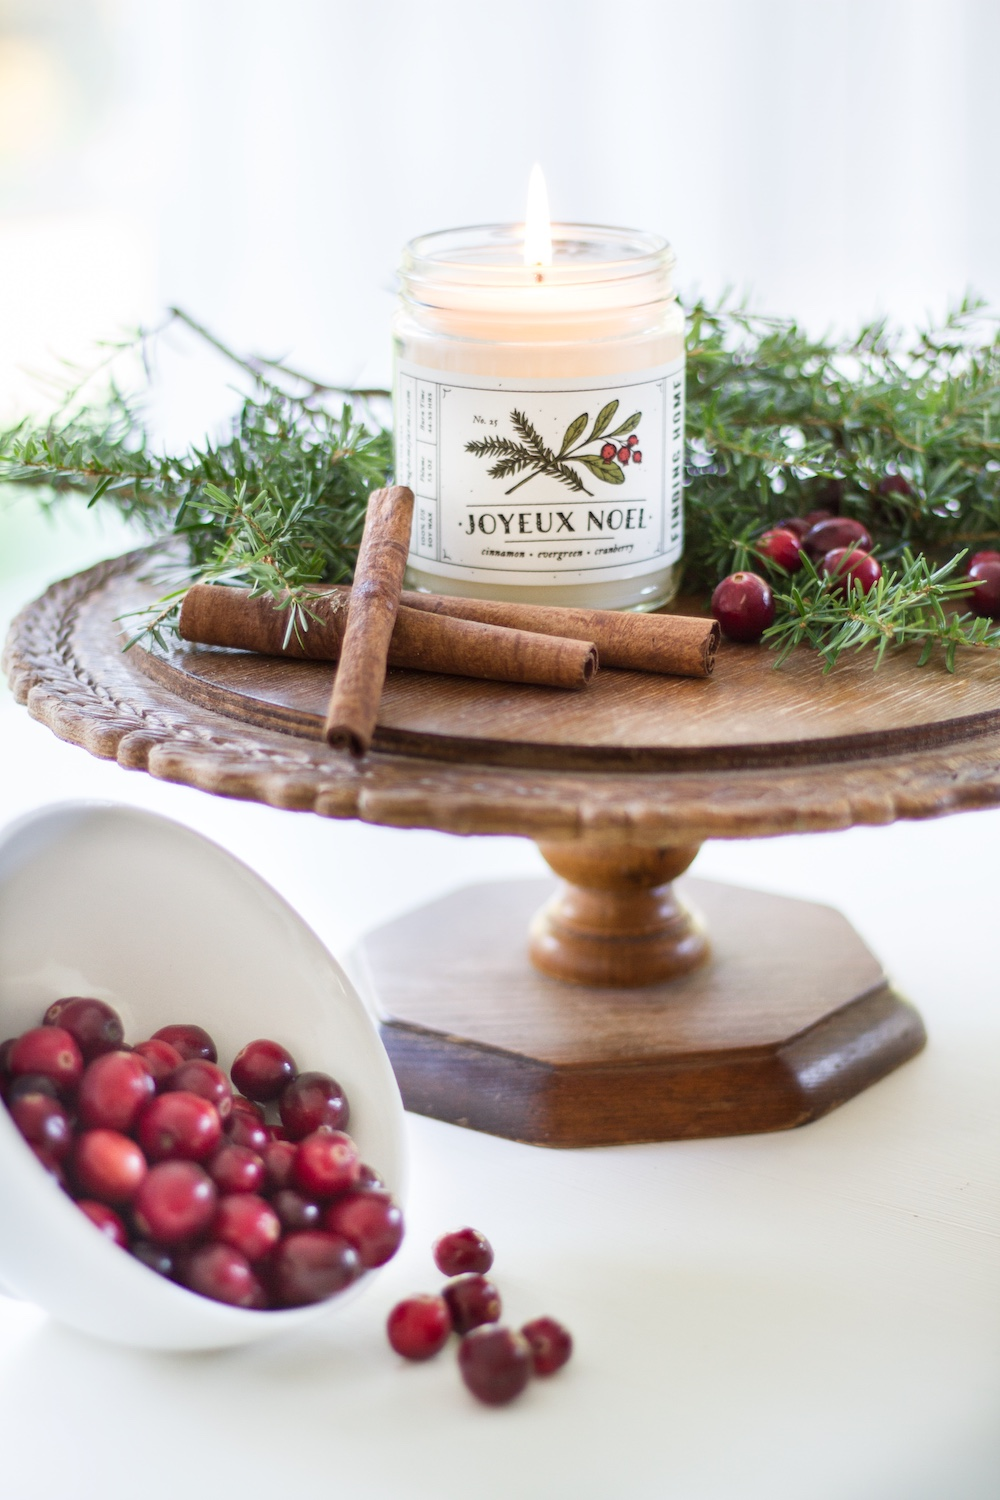 Joyeux Noel Soy Candle at Vivid Hue Home